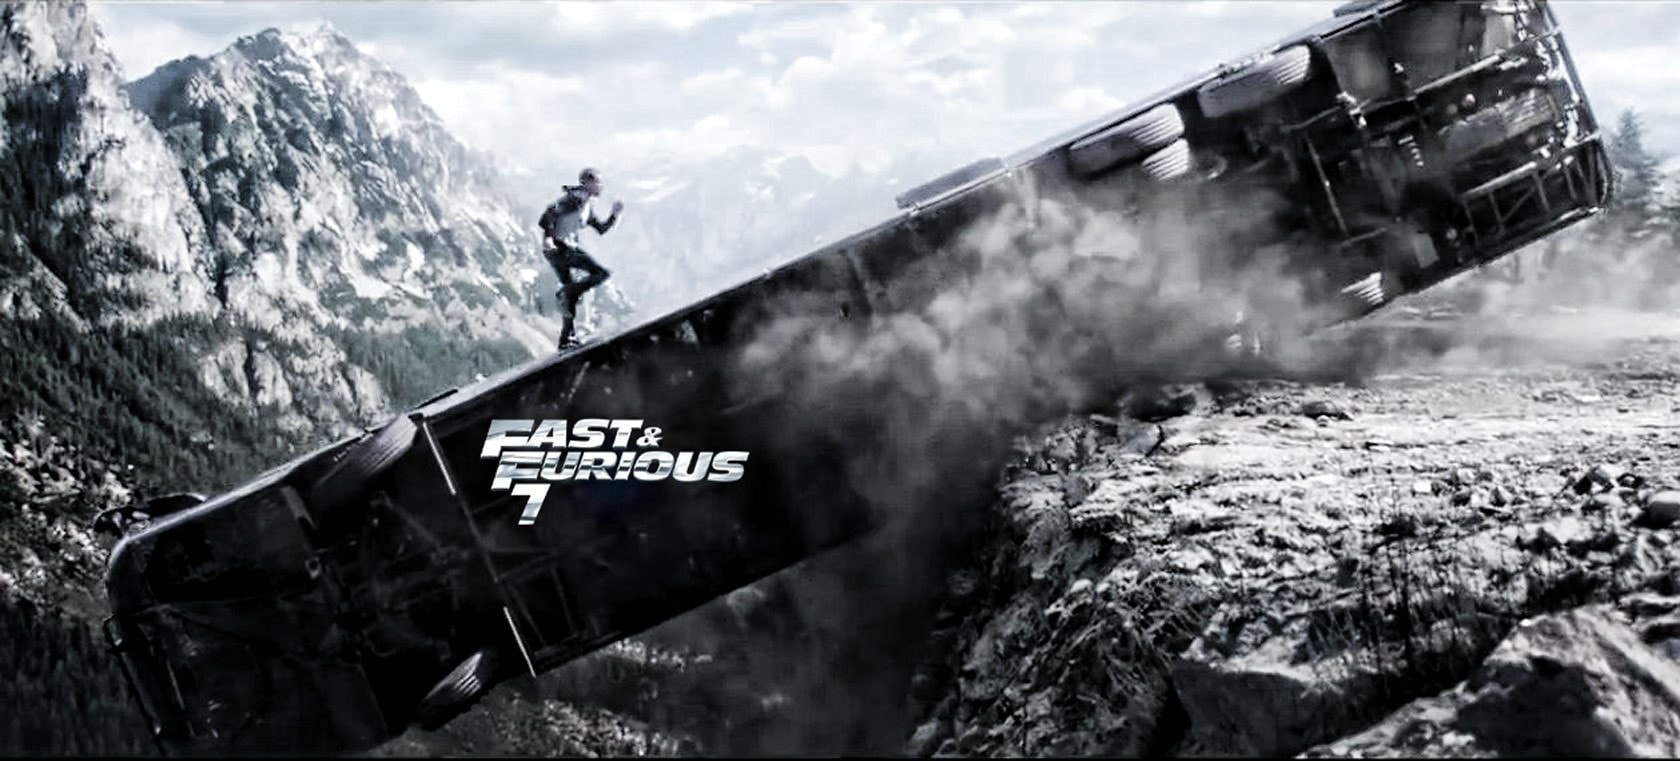 Fast Furious 7 Desktop Wallpapers